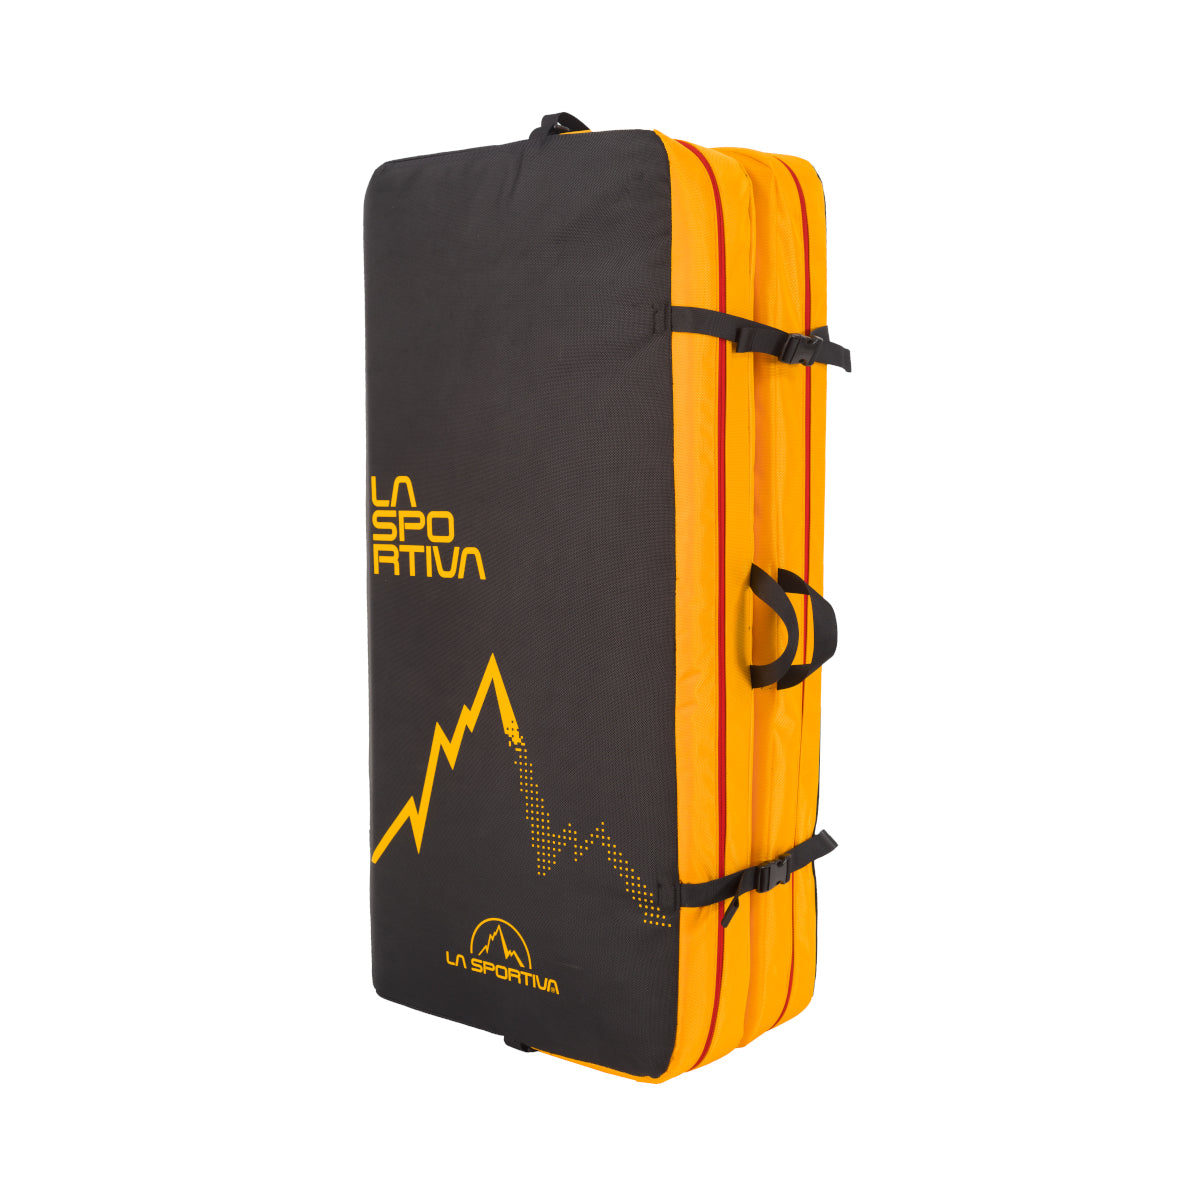 La Sportiva LaSpo Crash Pad, shown folded up in black and yellow colours